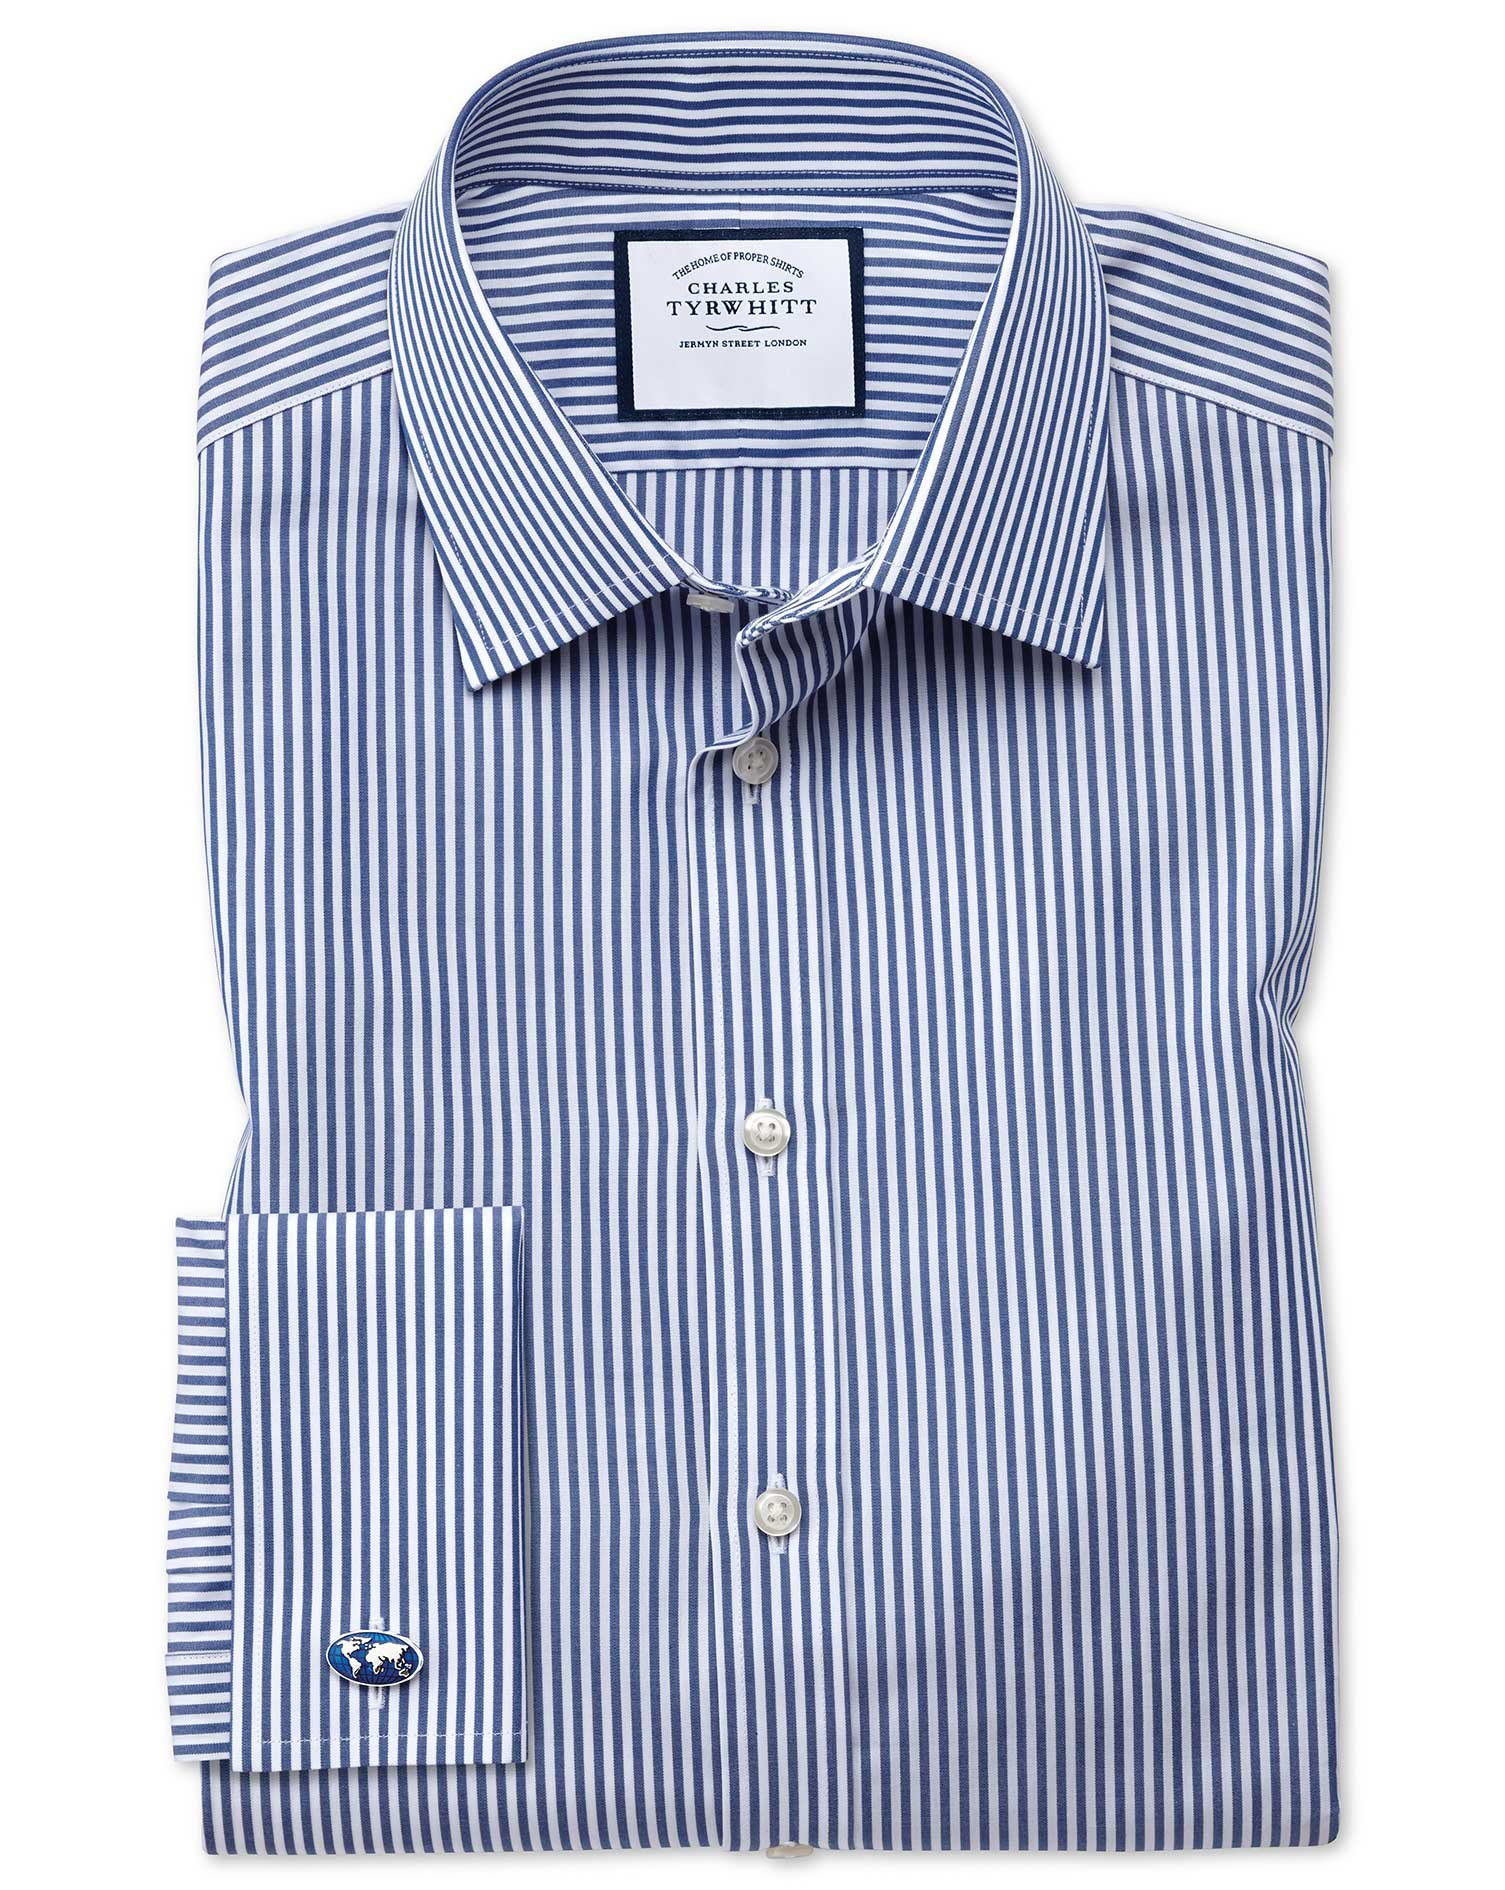 Slim Fit Bengal Stripe Navy Blue Cotton Formal Shirt Double Cuff Size 15.5/35 by Charles Tyrwhitt